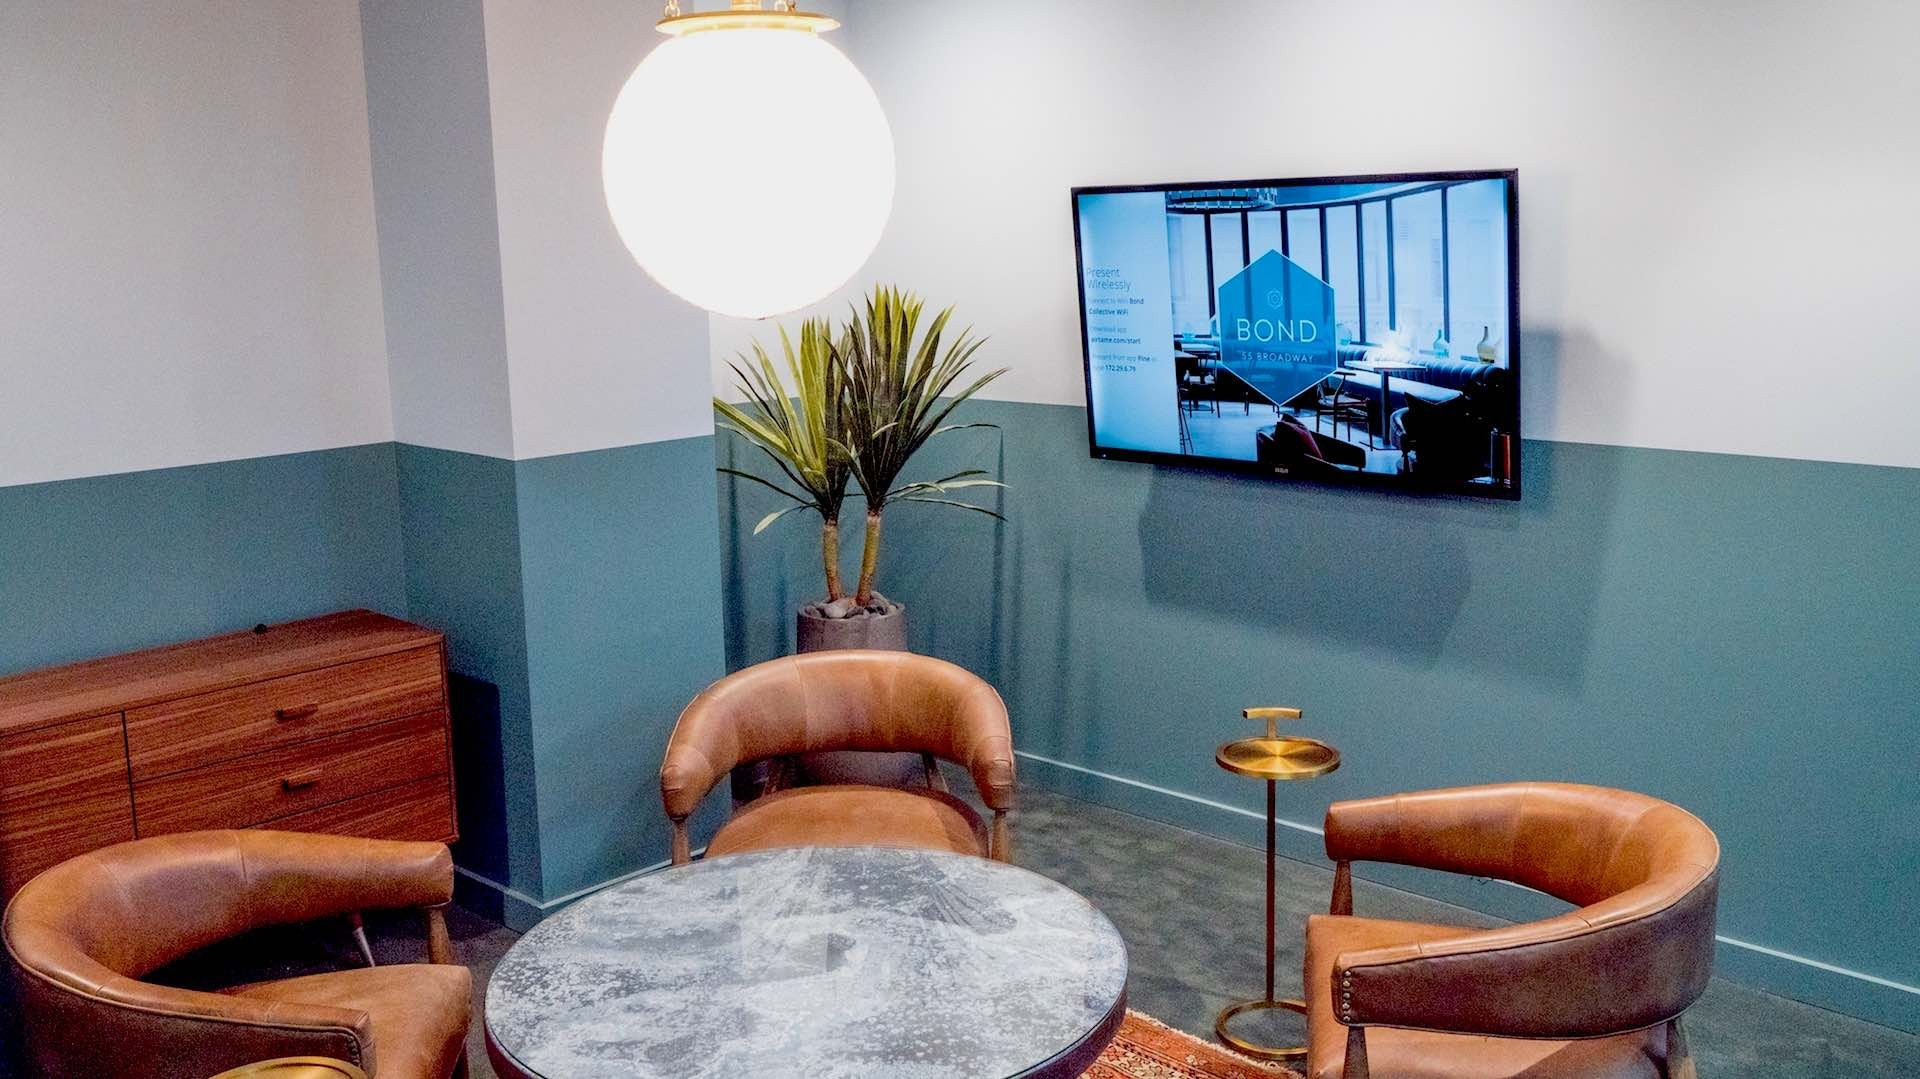 Digital signage deployment in a lounge area